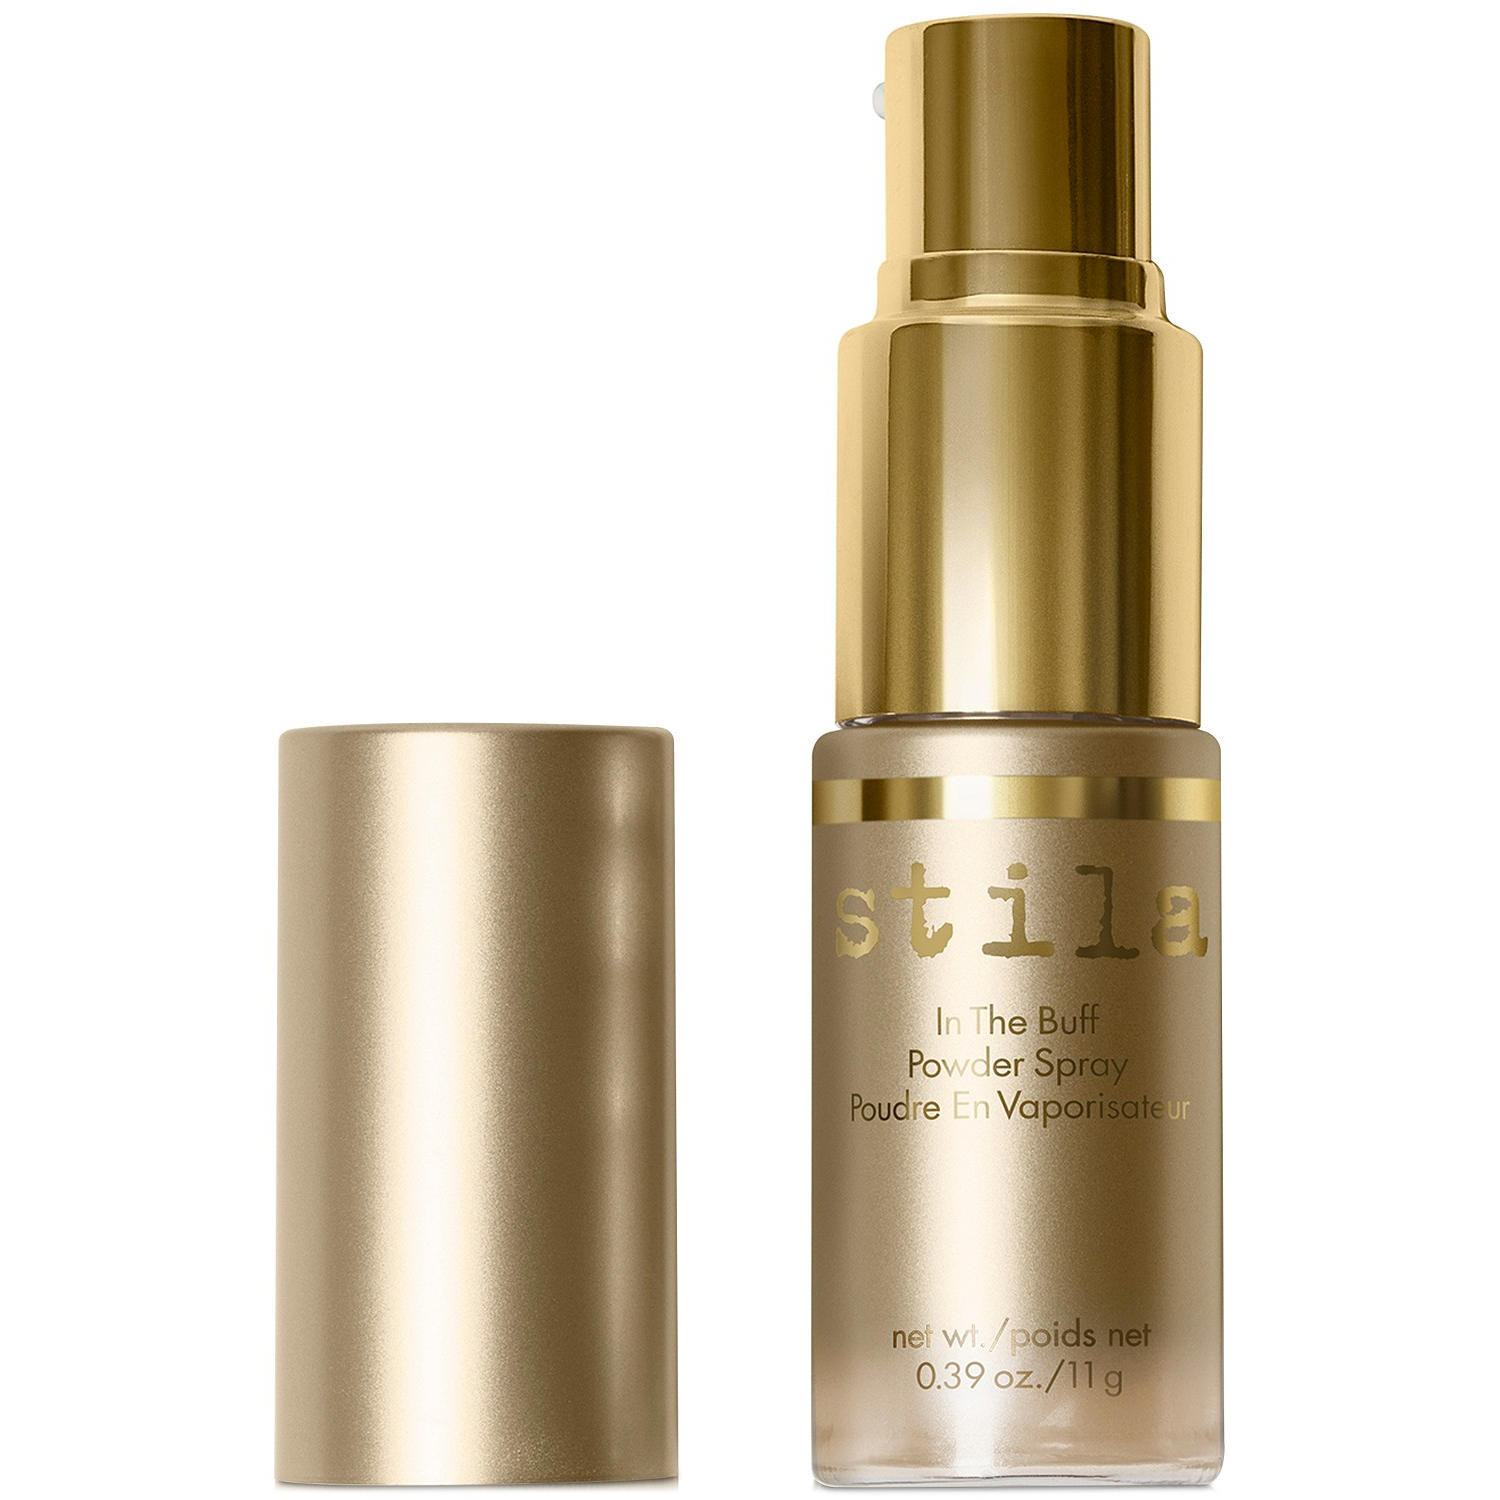 Stila In The Buff Powder Spray Light/Medium